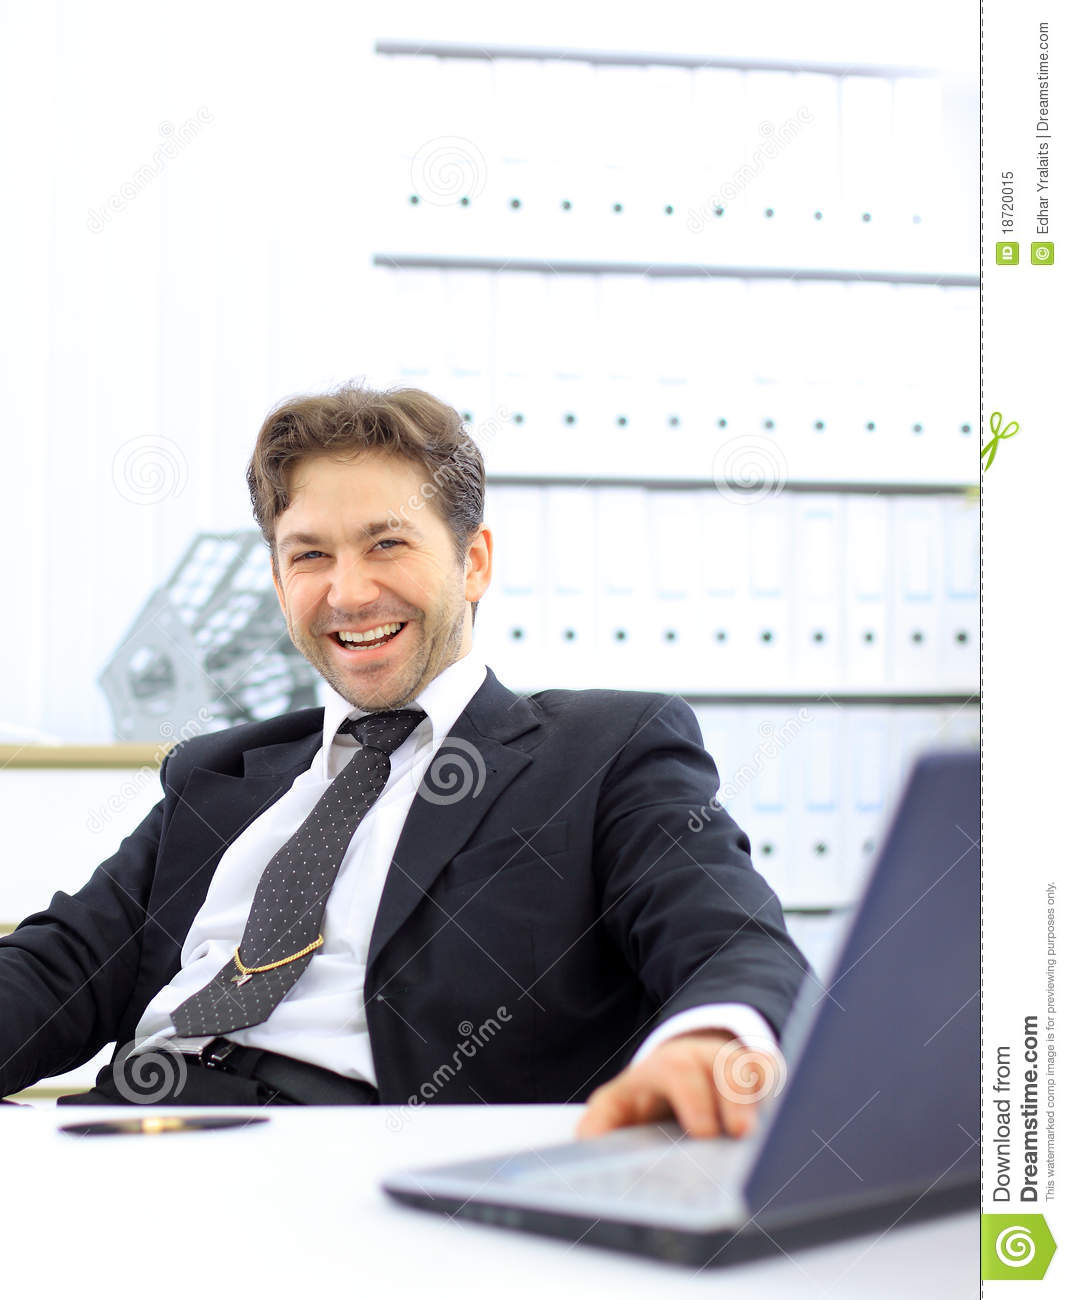 Business Man In Office Royalty Free Stock Photo - Image: 18720015